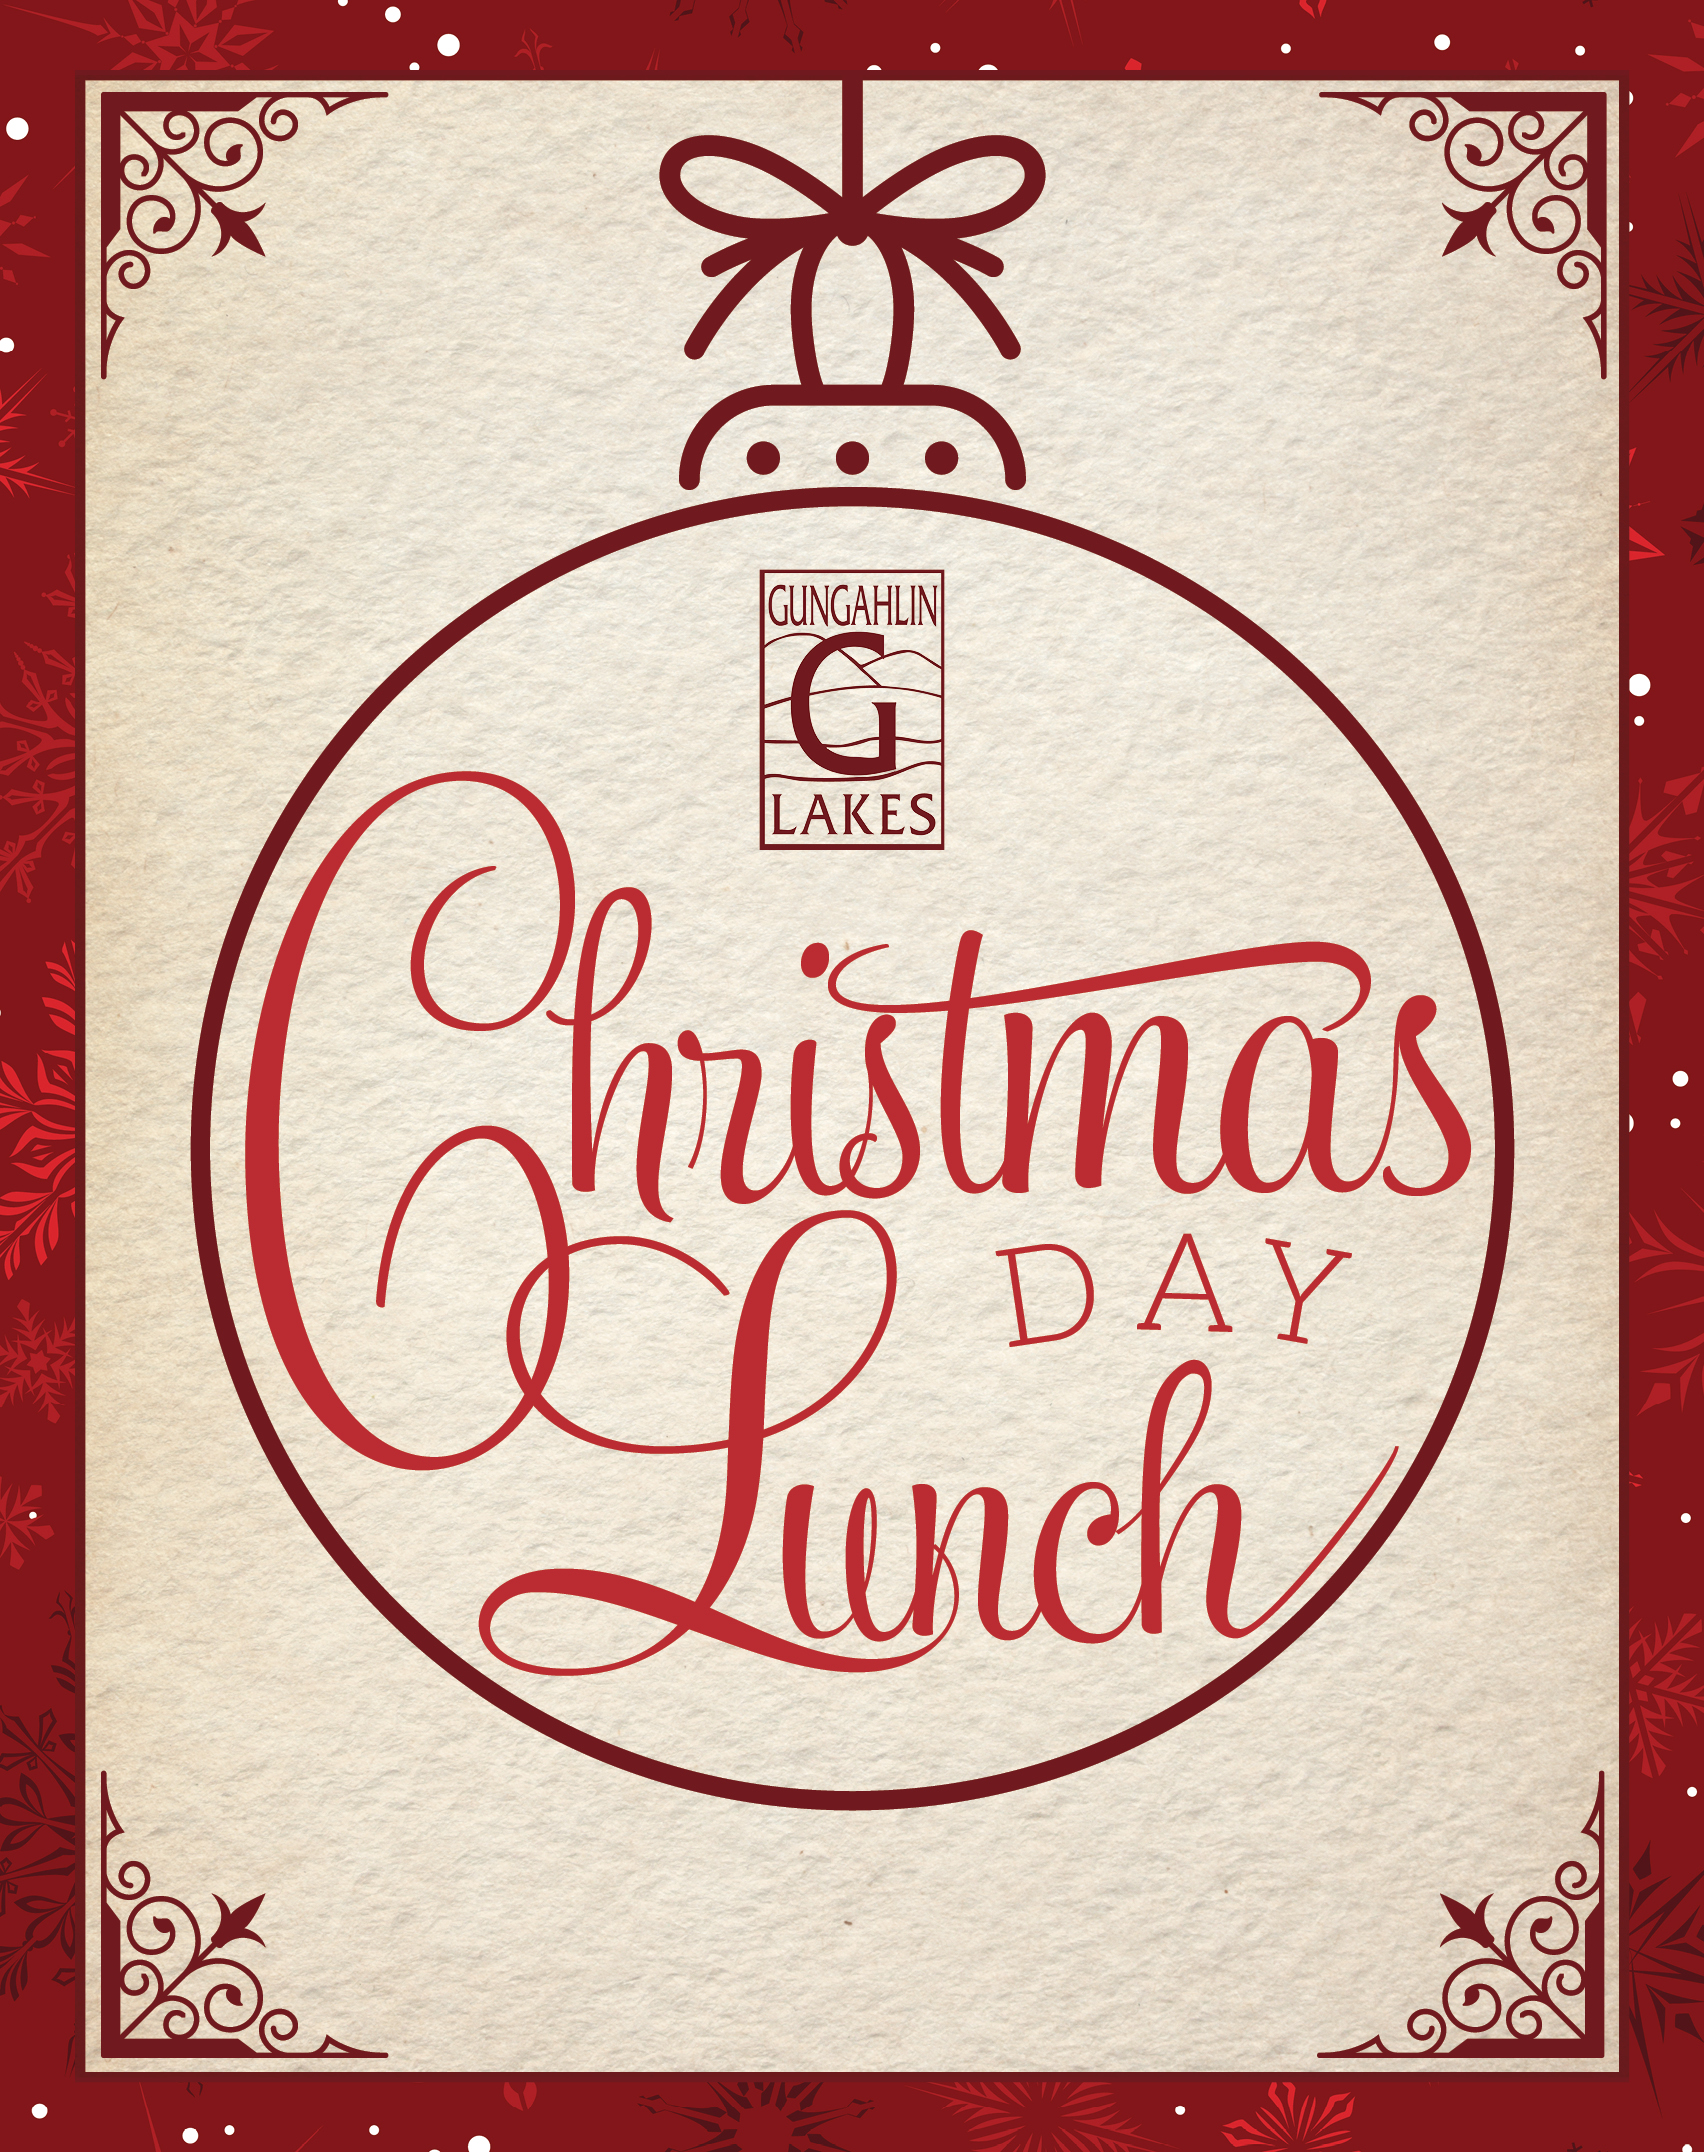 Chrismas Day Lunch at The Lakes